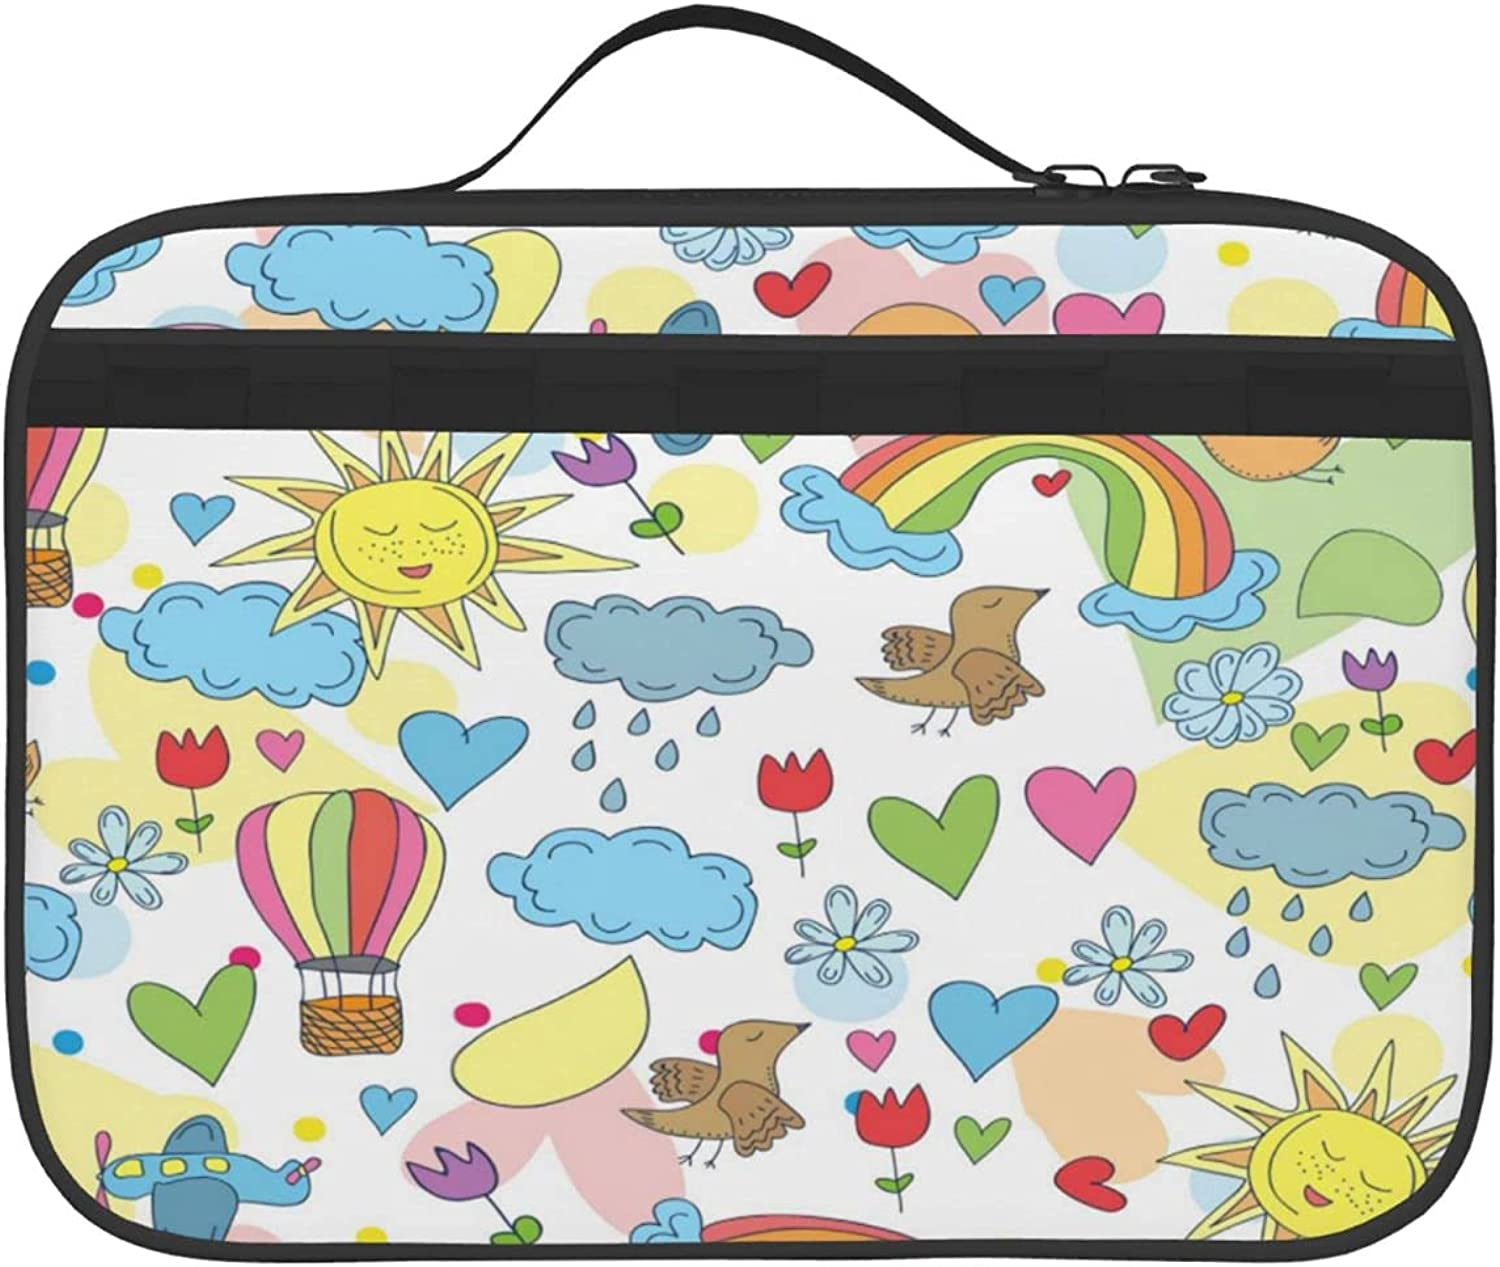 Rare Weather Pattern Two-Side Printed Insulated For Lunch Bag Max 58% OFF Outdoor